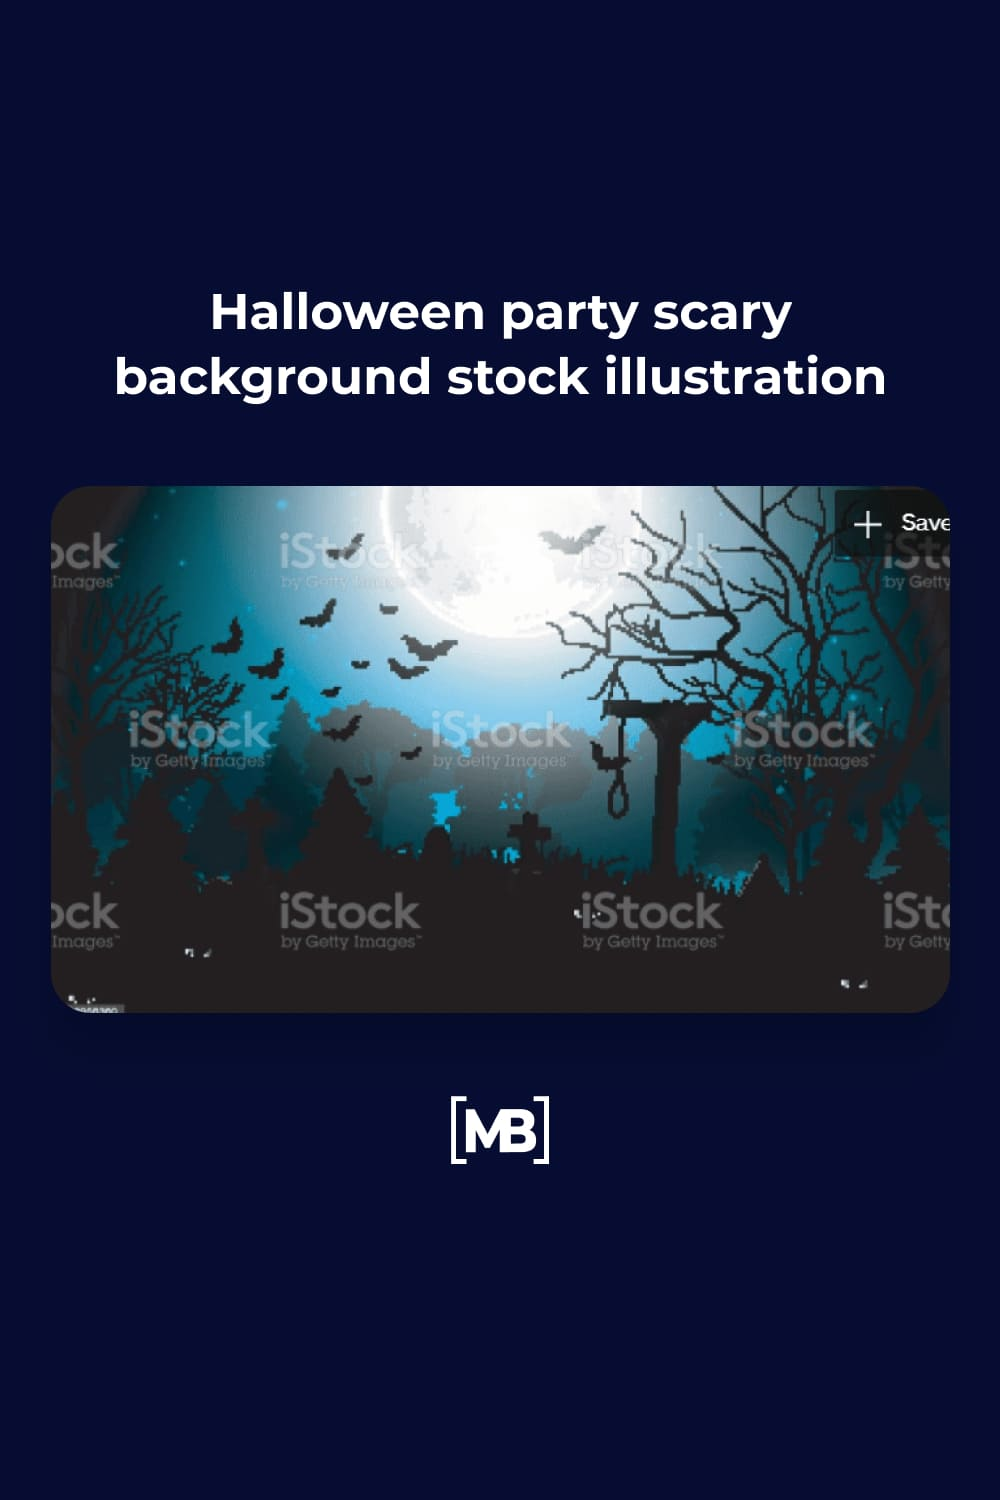 8 Halloween party scary background stock illustration